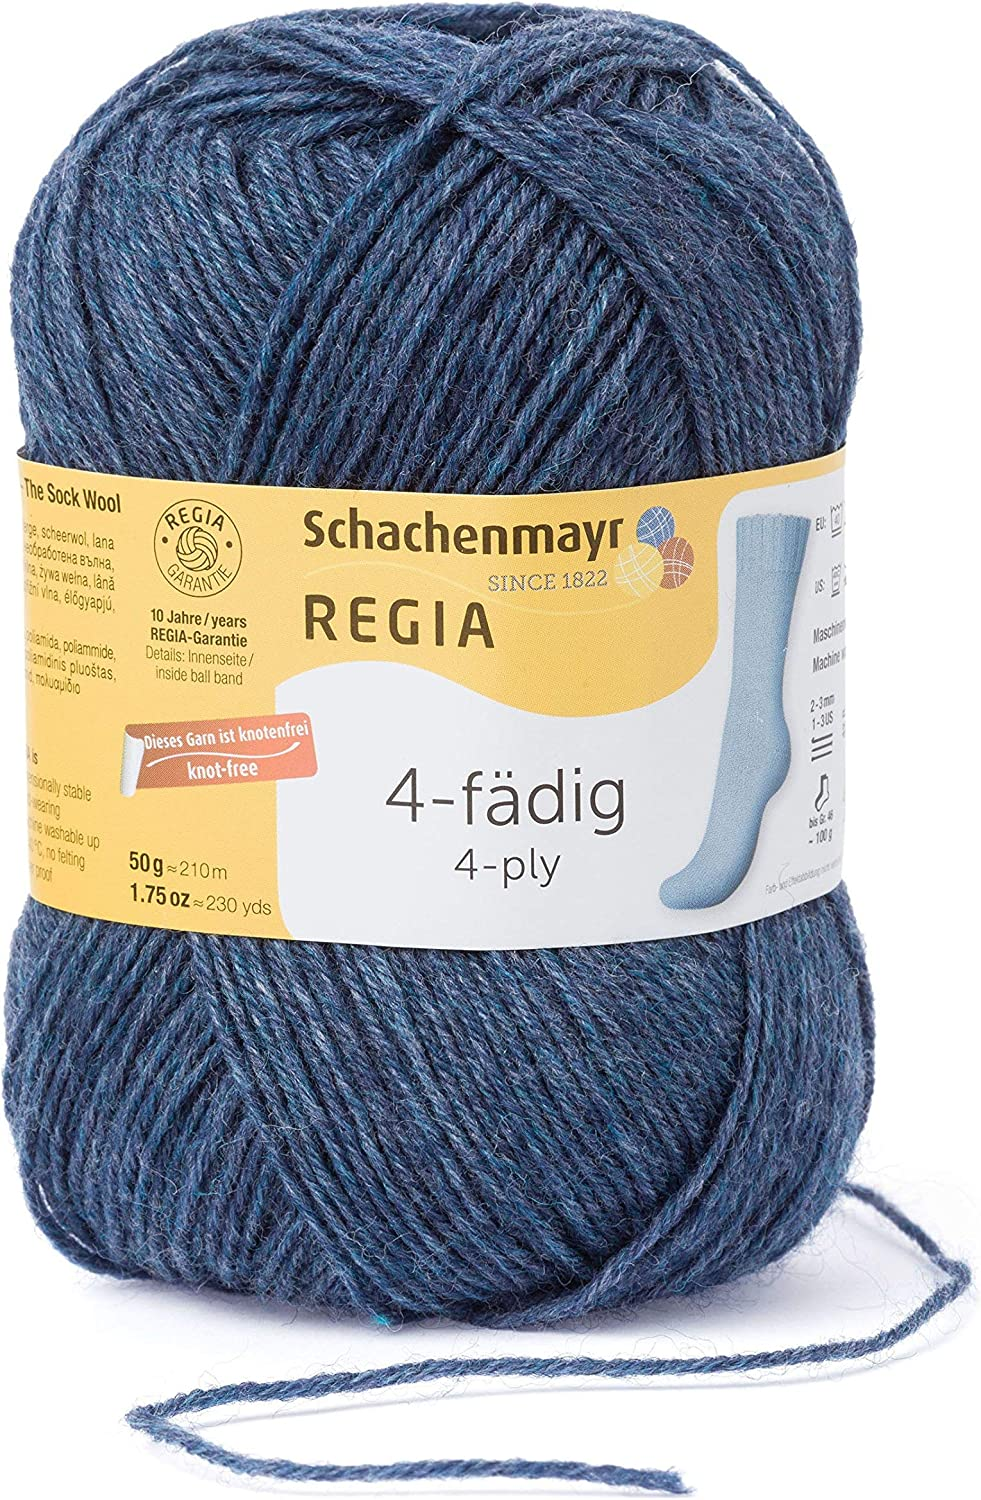 Regia calcetines lana color 6 fädig 50g color 01132 Square Candy